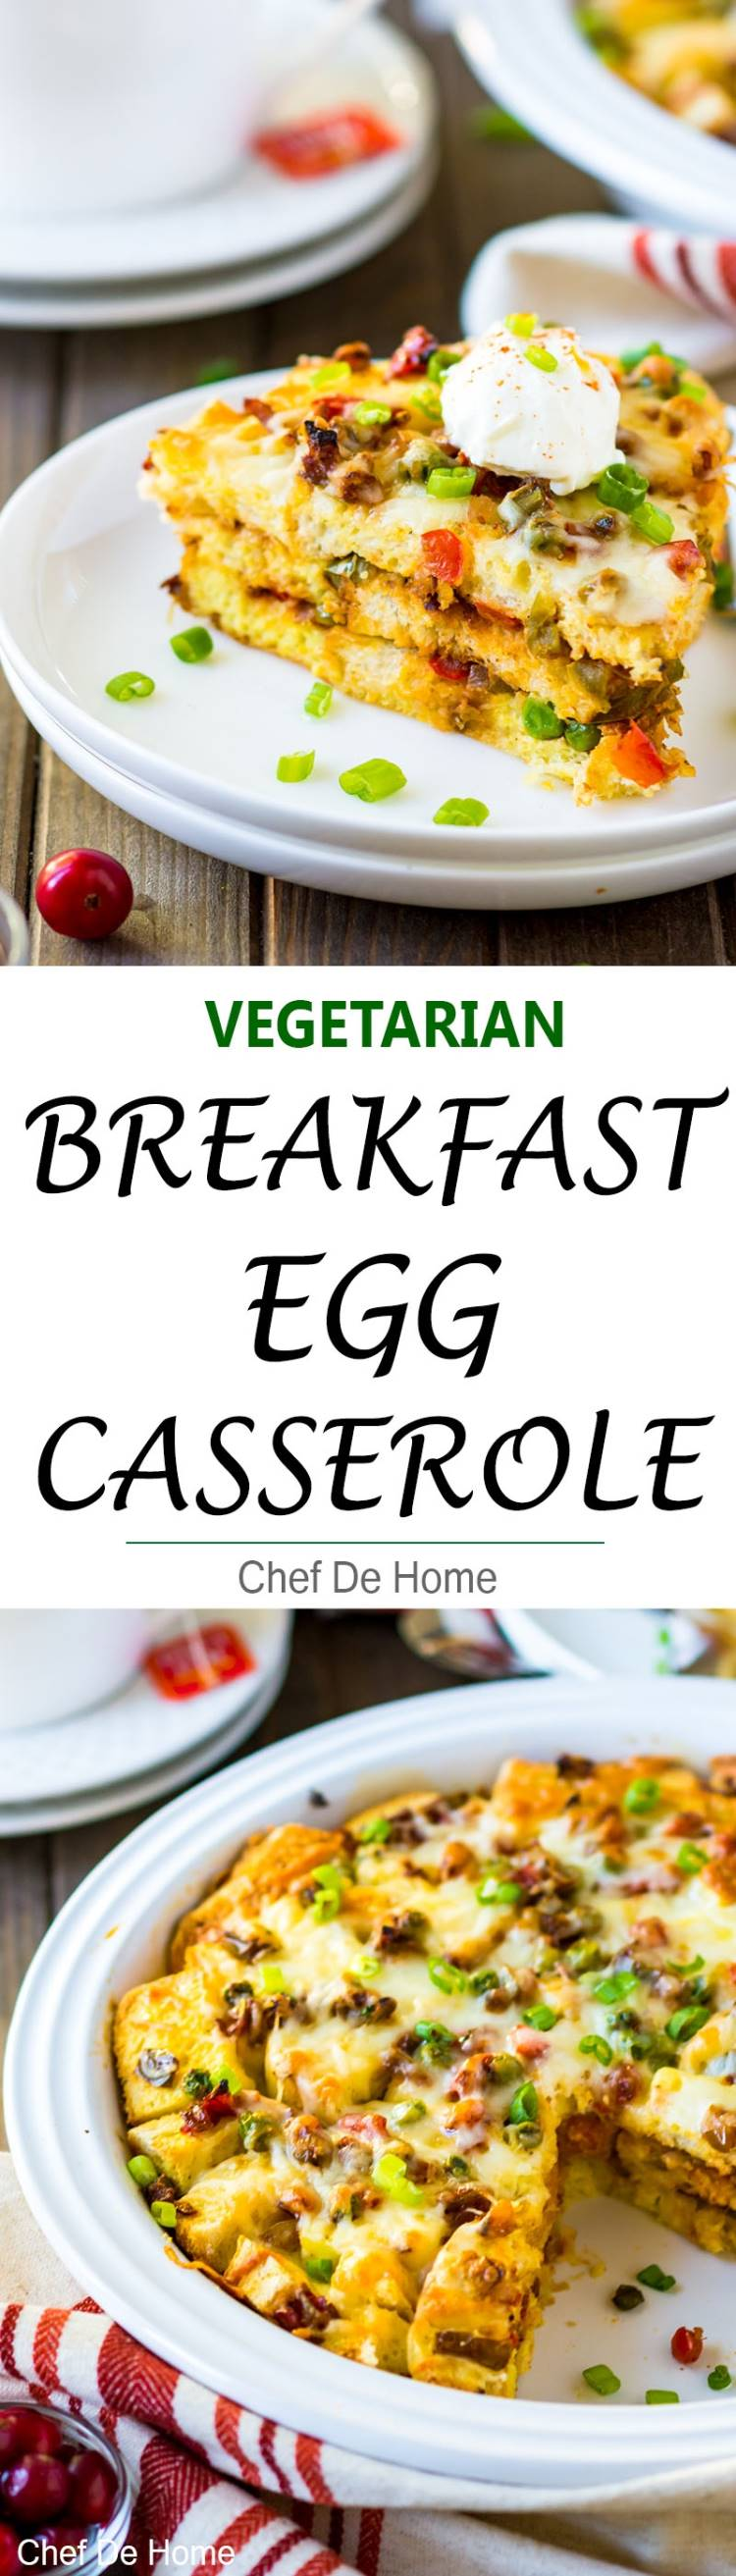 Vegetarian Breakfast Egg Casserole with Indian spices veggies eggs and bread | chefdehome.com